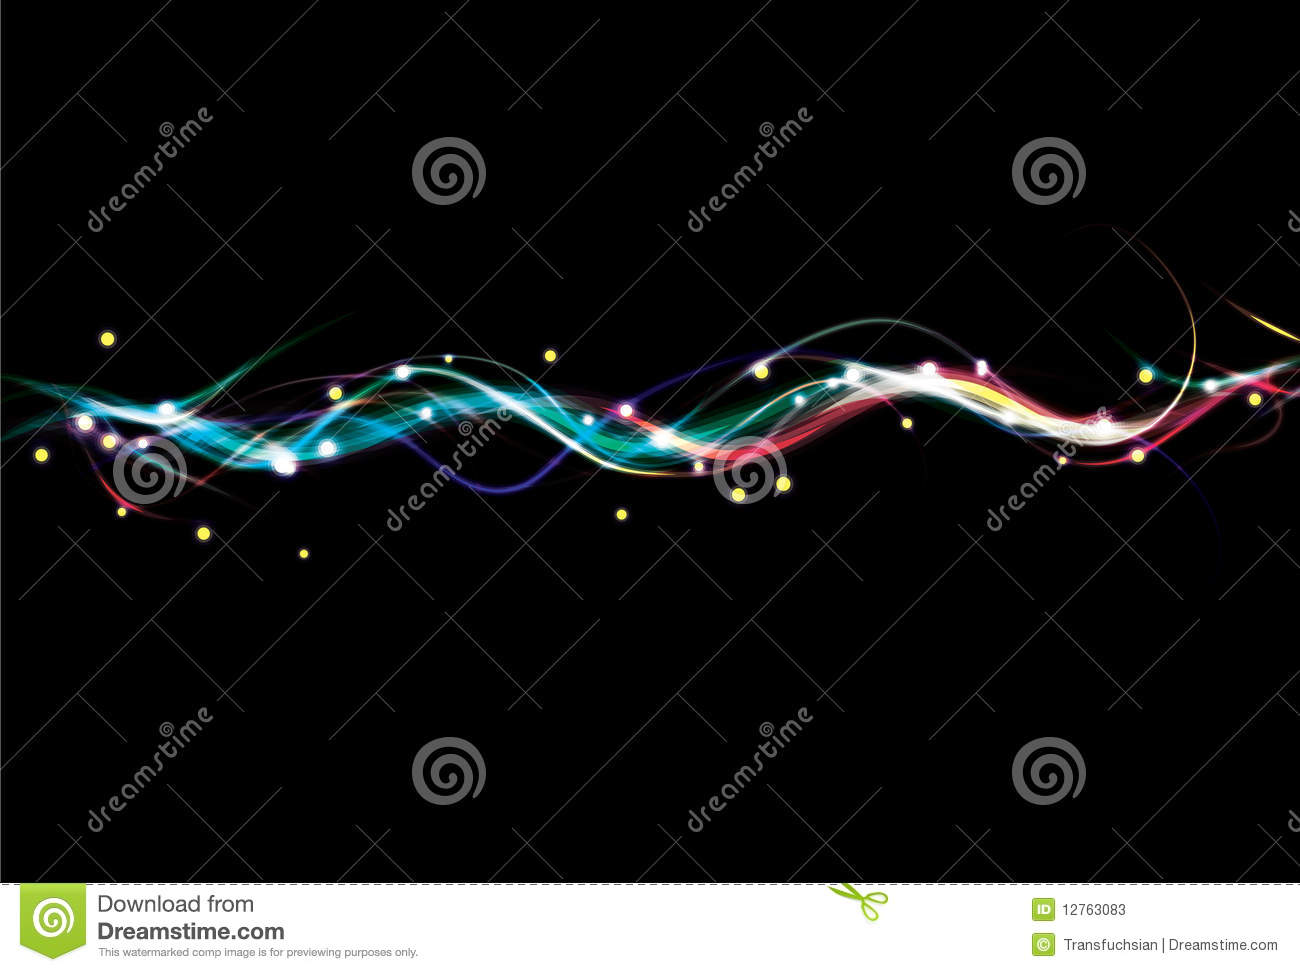 Fancy Club Light Effects In A Dark Background Stock: Blurry Colorful Light Effect Wave Background Stock Photos